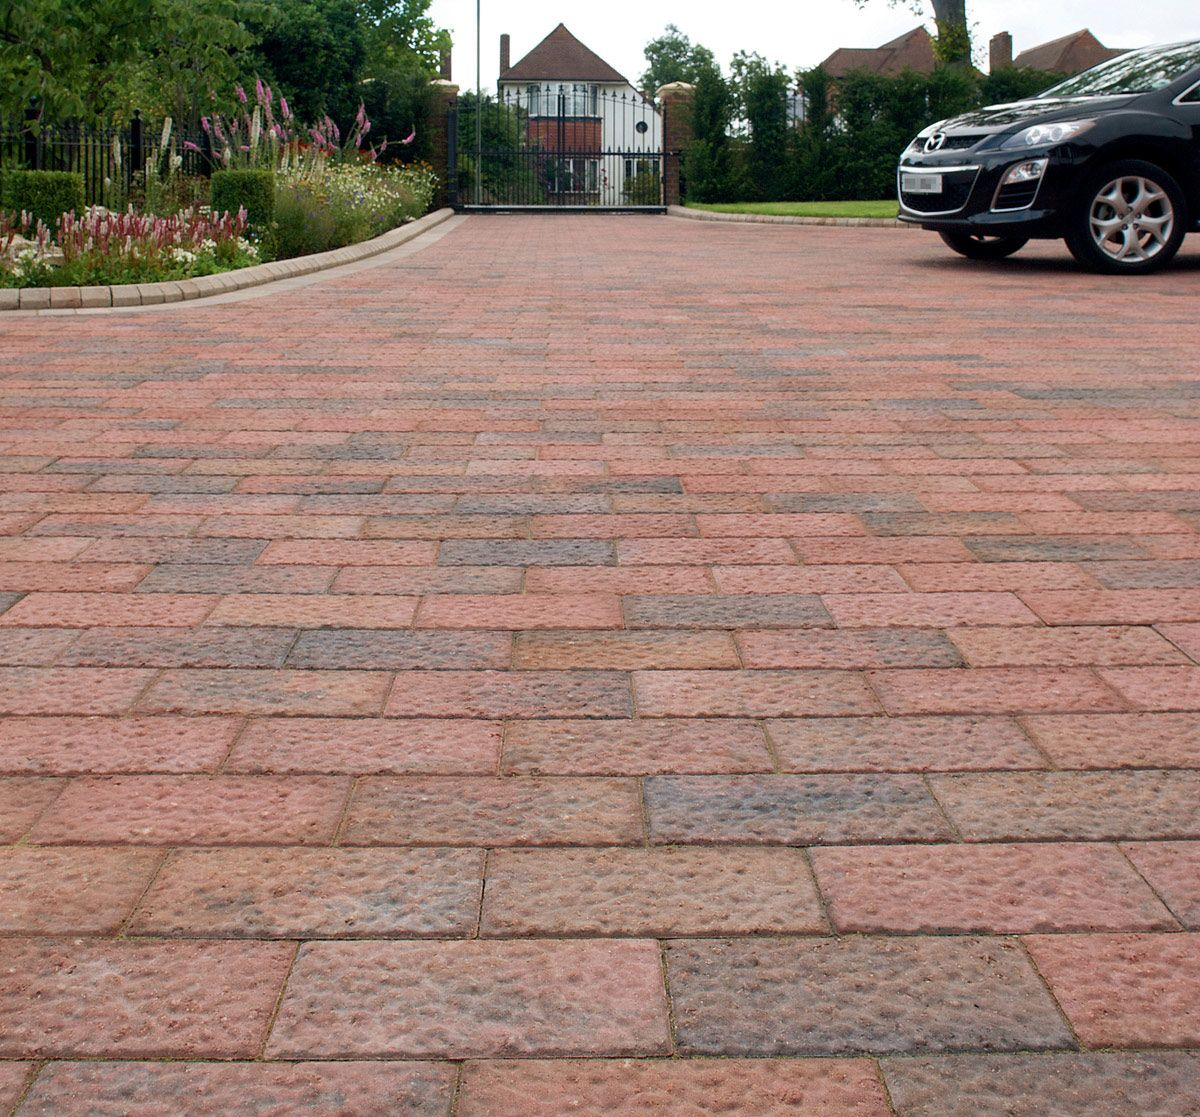 Block Paving Advantages Yonohomedesign Com In 2020 Paver Patio Block Paving Patio Block Paving